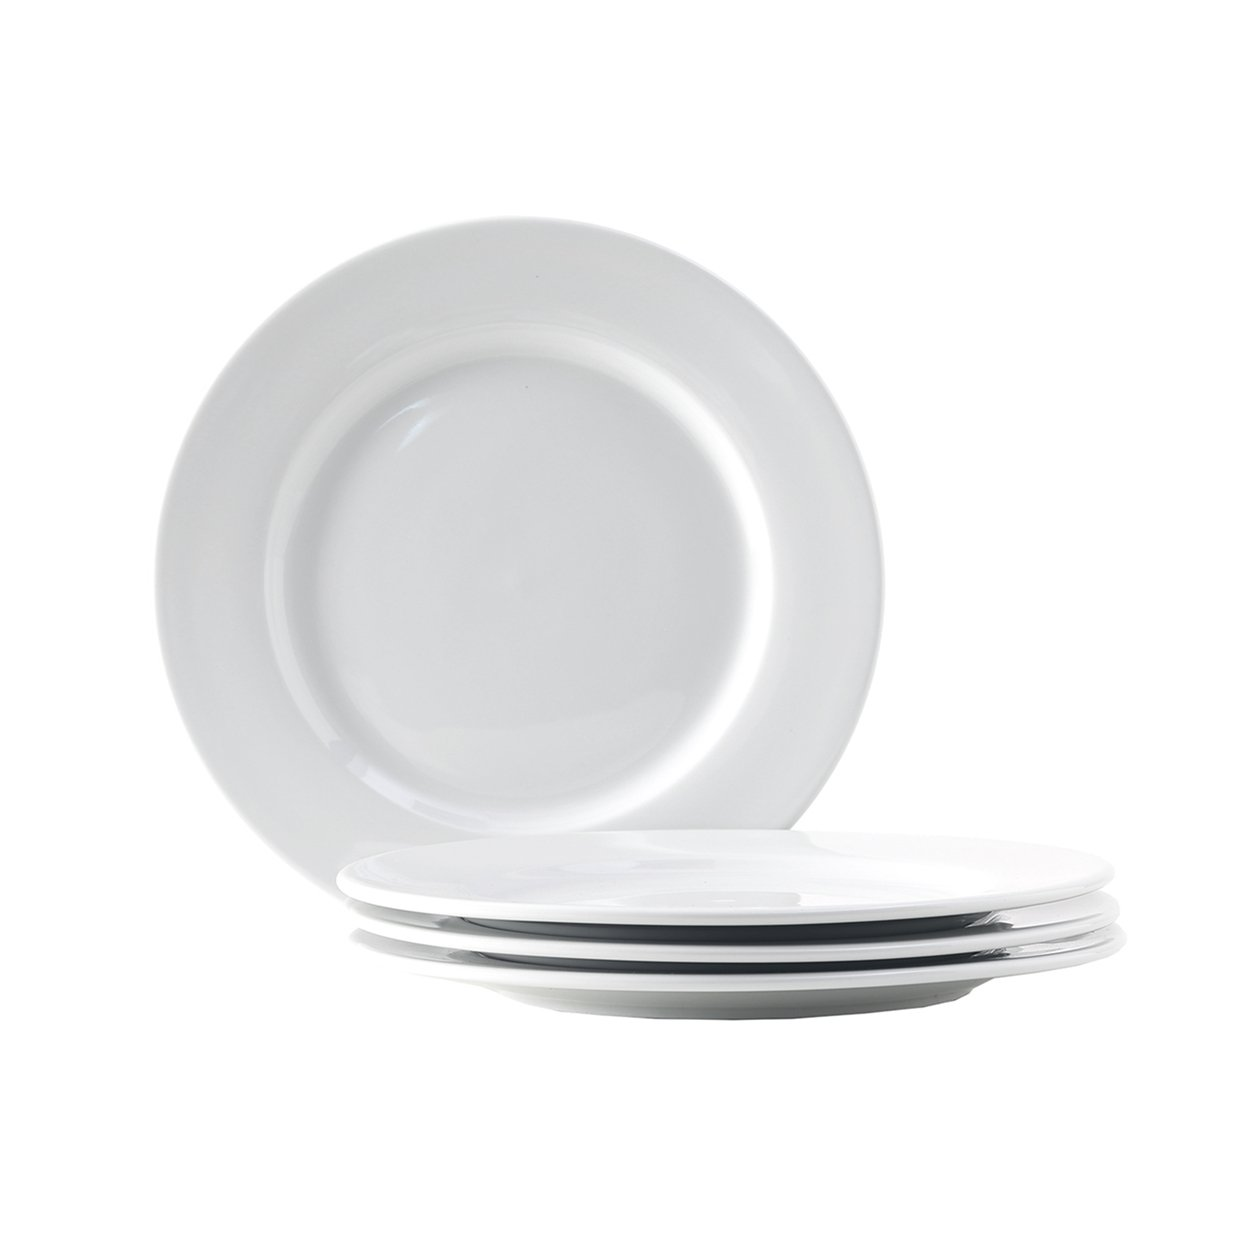 Set of 4; Heavy Duty; Chip Resistant; Lead and Cadmium Free; Freezer to Oven Safe up to 500F Tuxton Home Alaska Porcelain White Wide Rim 7-1//2 Salad Plate